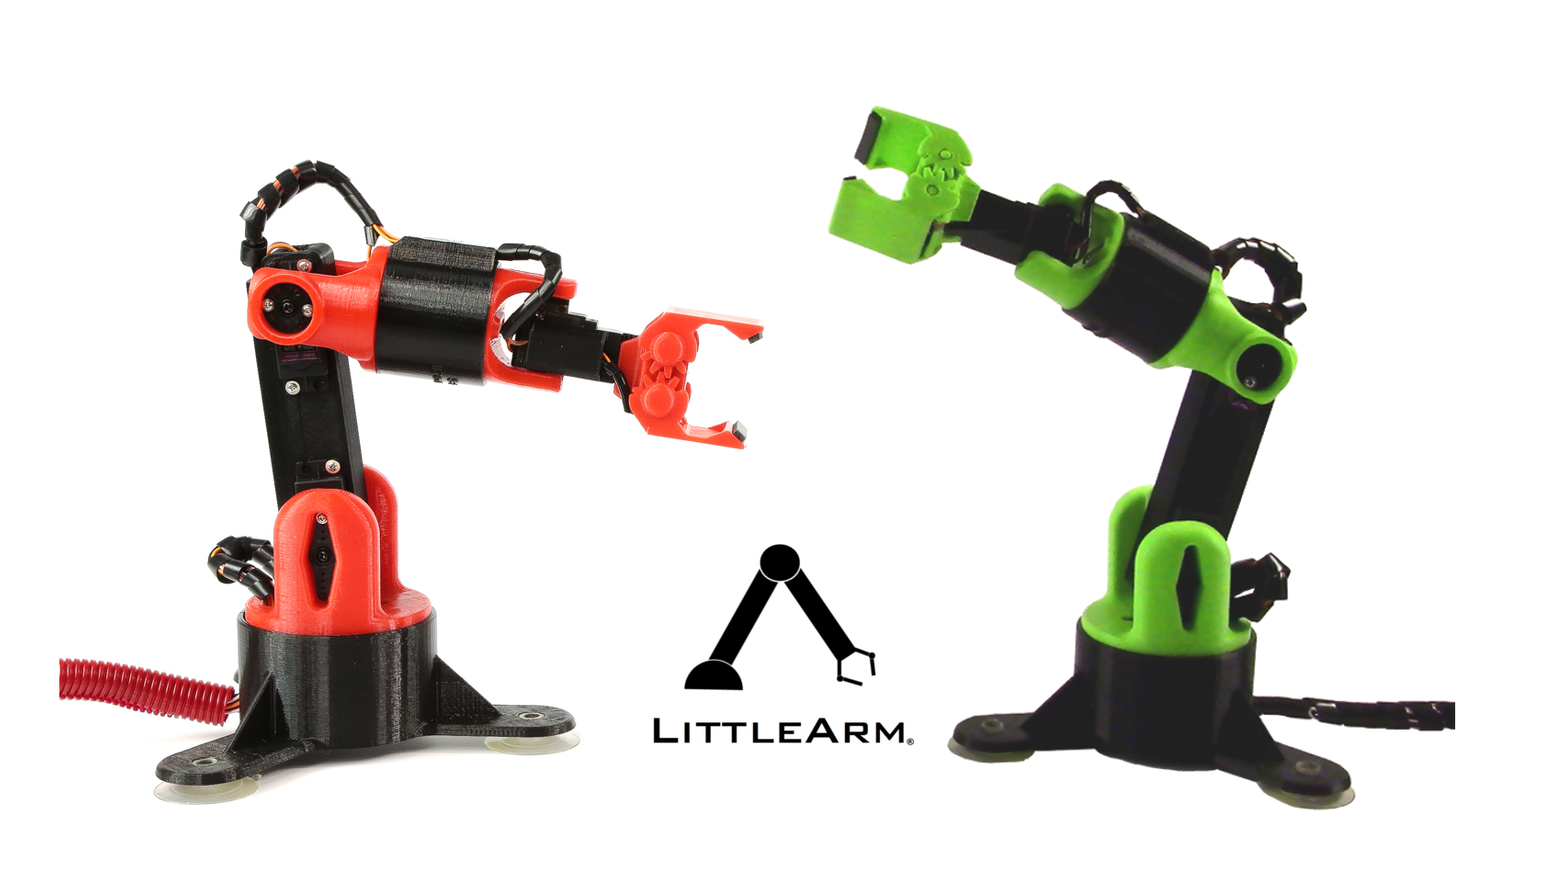 A 3D Printed Desktop Robotic Arm, based on Arduino, for Hobbyists and Education at all Levels